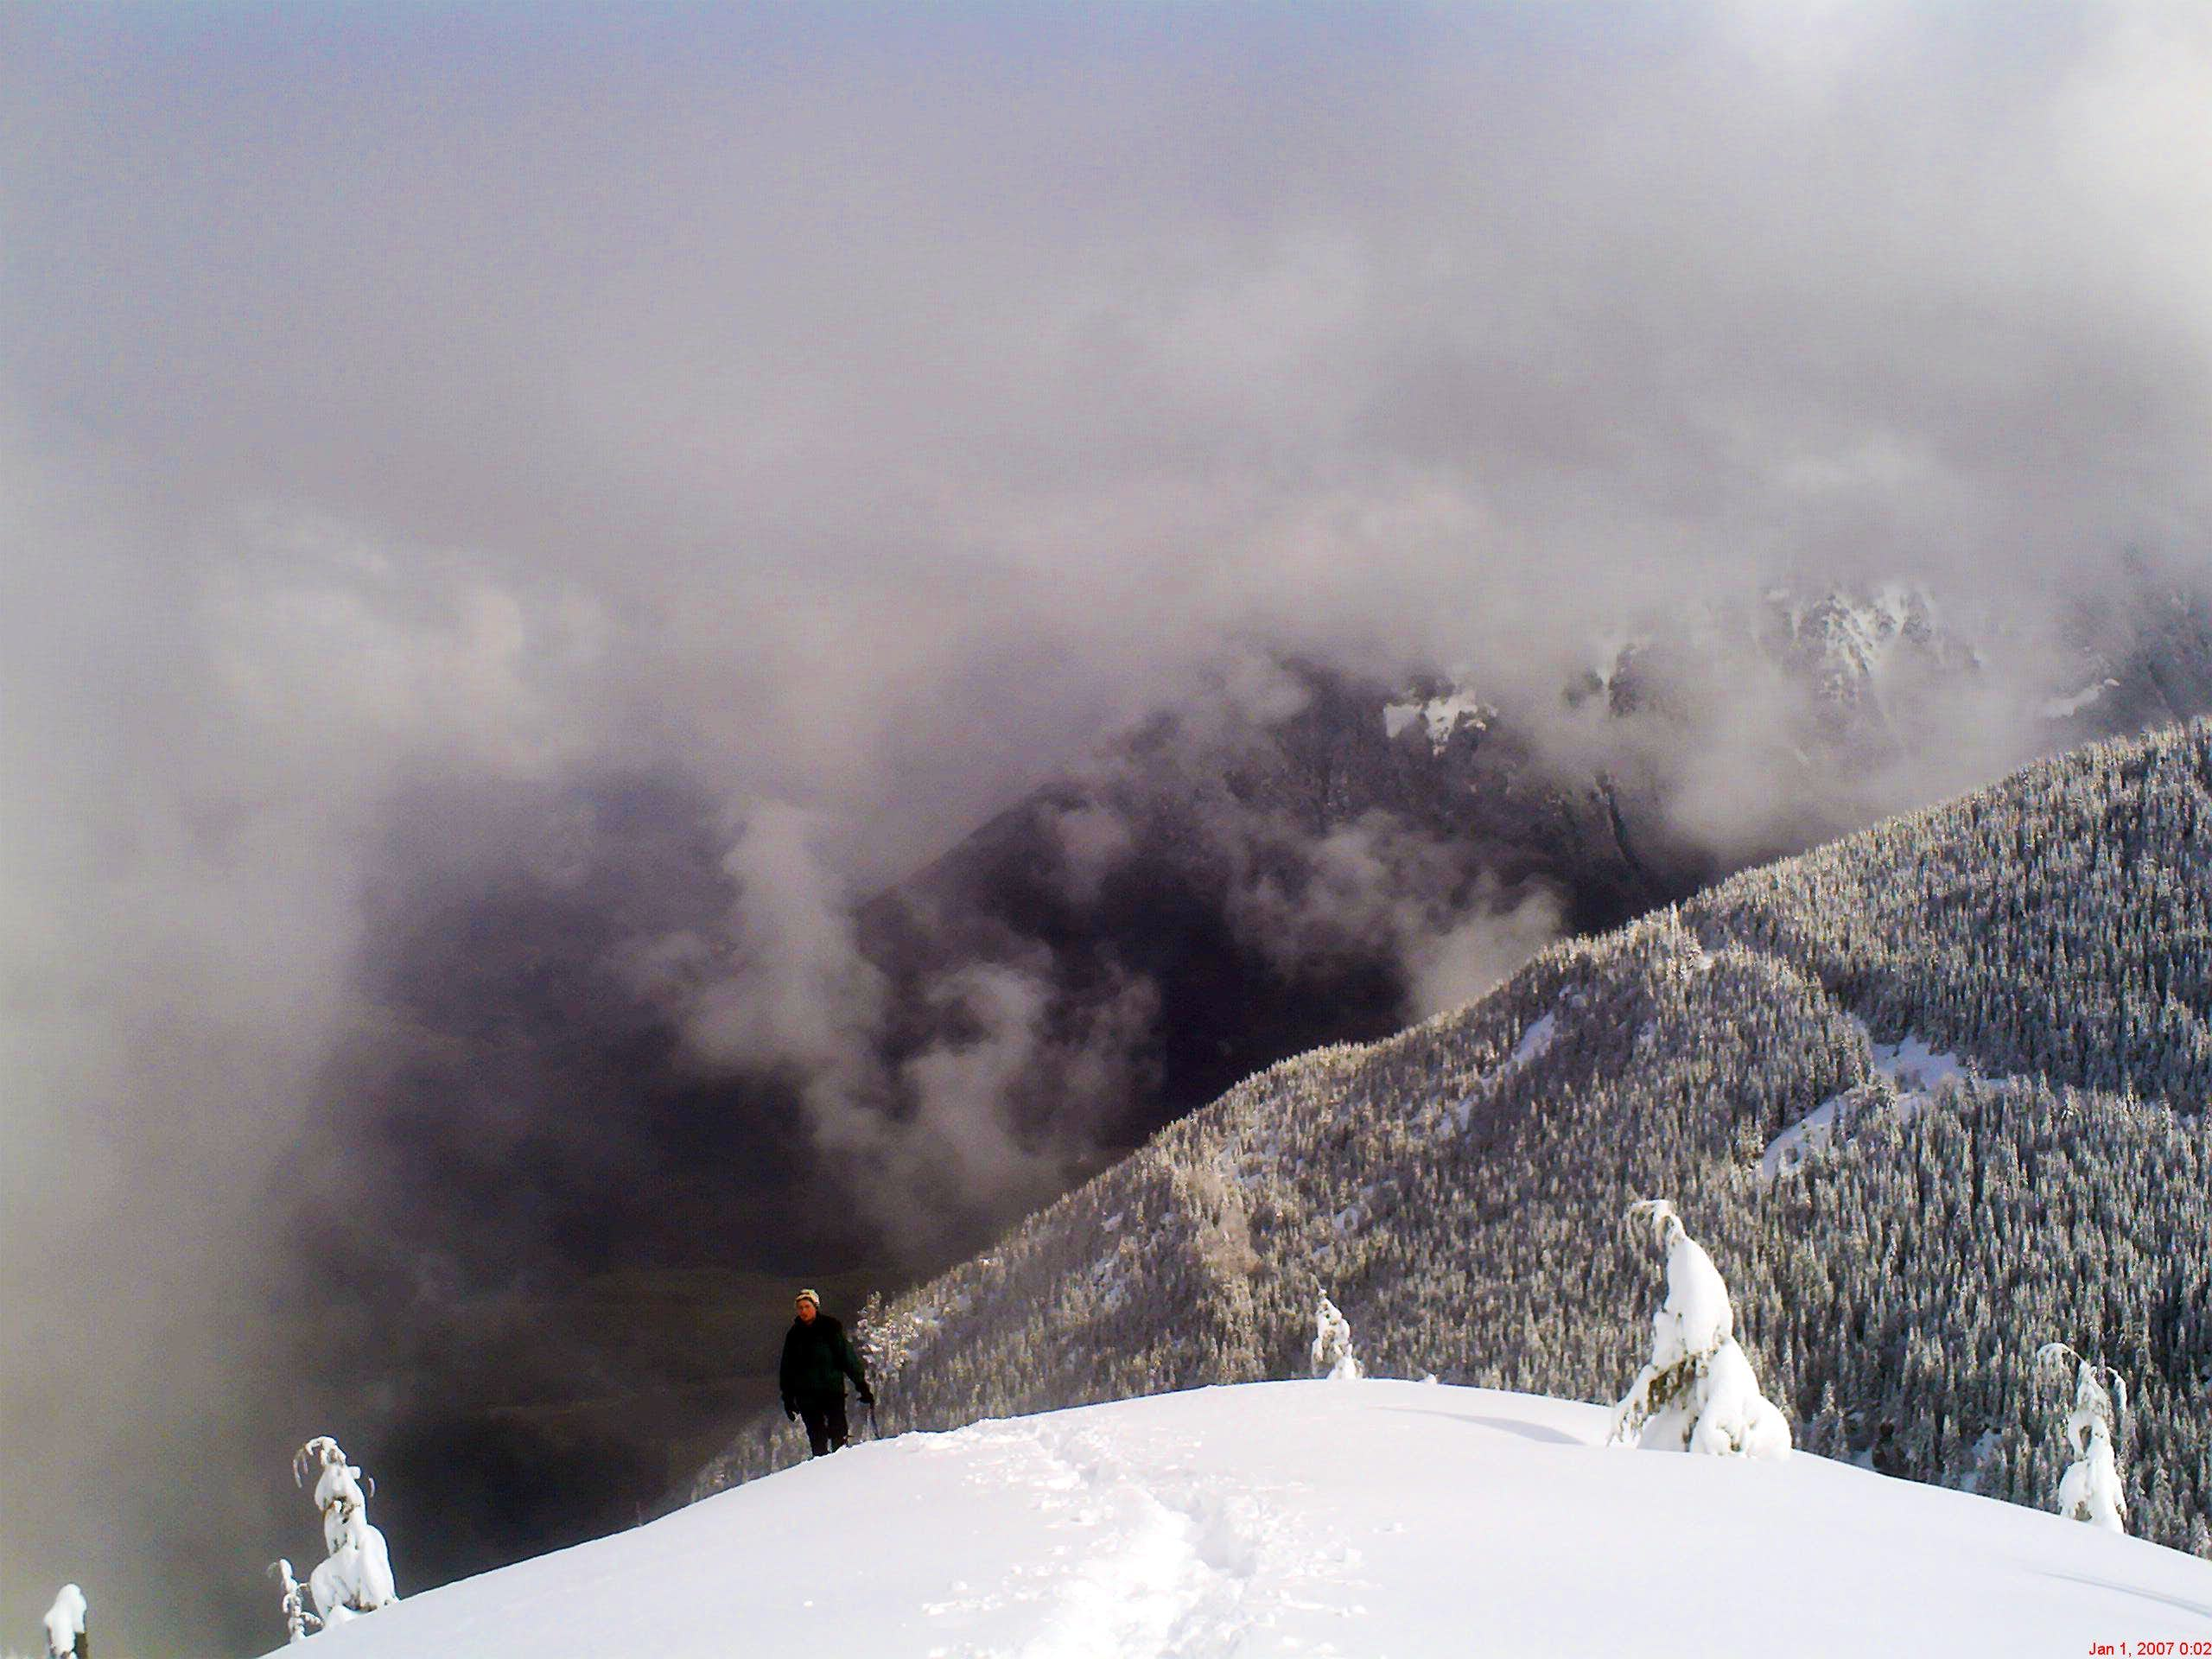 Winter on this Mount Washington